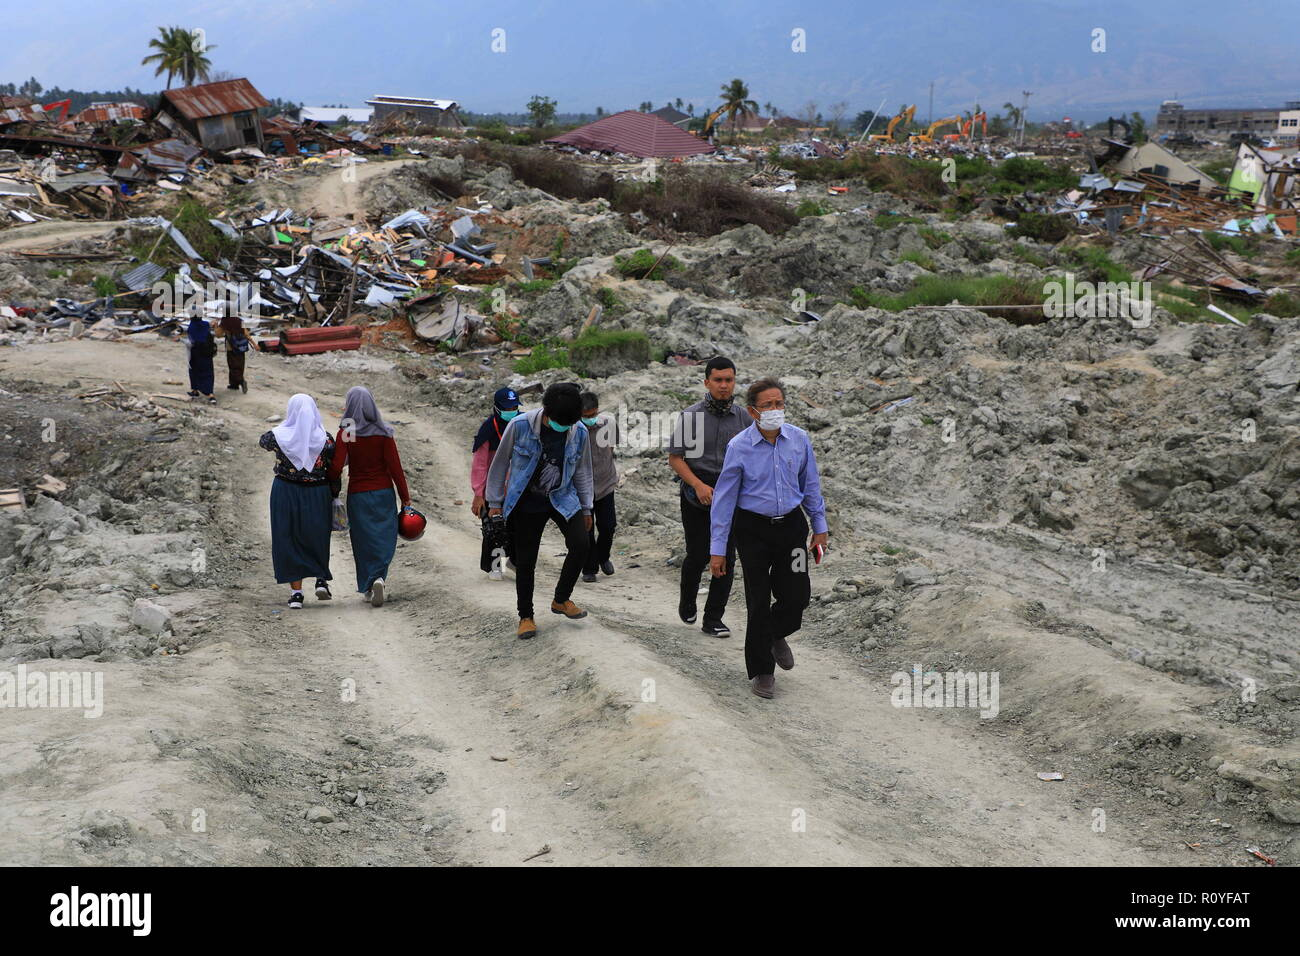 Palu, Central Sulawesi, Indonesia. 1st Nov, 2018. Head of the Indonesian Geospatial Information Agency, Mr. Hasannudin Z. Abidin seen reviewing the locations of the earthquake and liquefaction in Petobo, Palu as they plan to begin the project of making a basic map implemented by the Indonesian Geospatial Information Agency.A deadly earthquake measuring 7.5 magnitude and the tsunami wave caused by it has destroyed the city of Palu and much of the area in Central Sulawesi. According to the officials, the death toll from the devastating earthquake and tsunami has risen to 2088, around 5000 Stock Photo